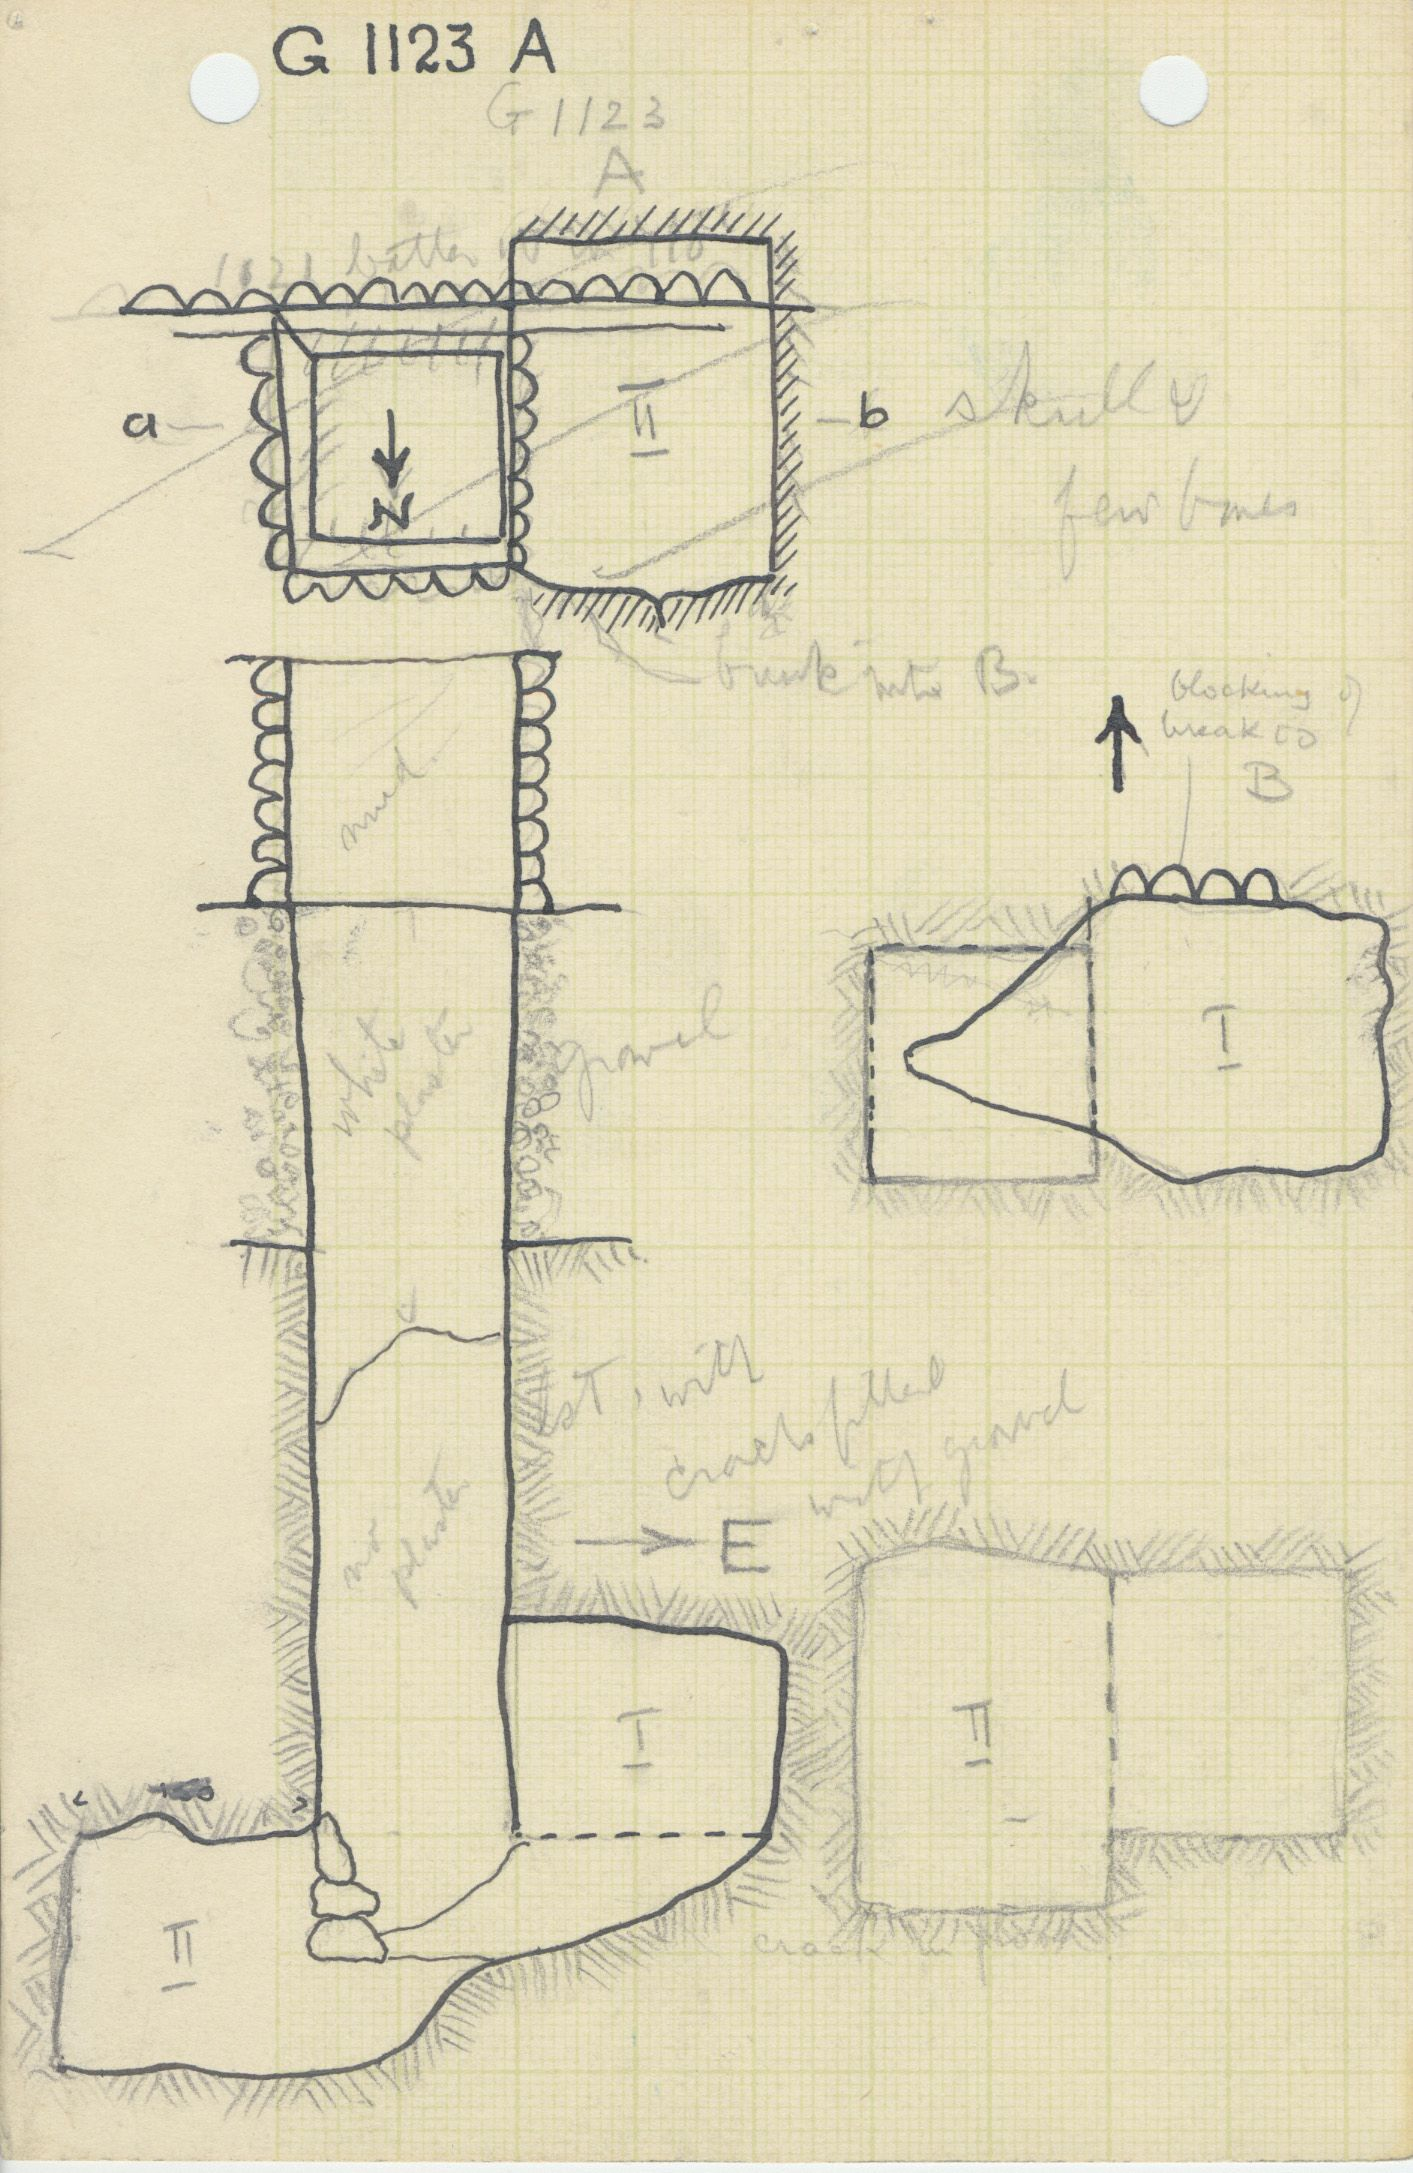 Maps and plans: G 1123, Shaft A